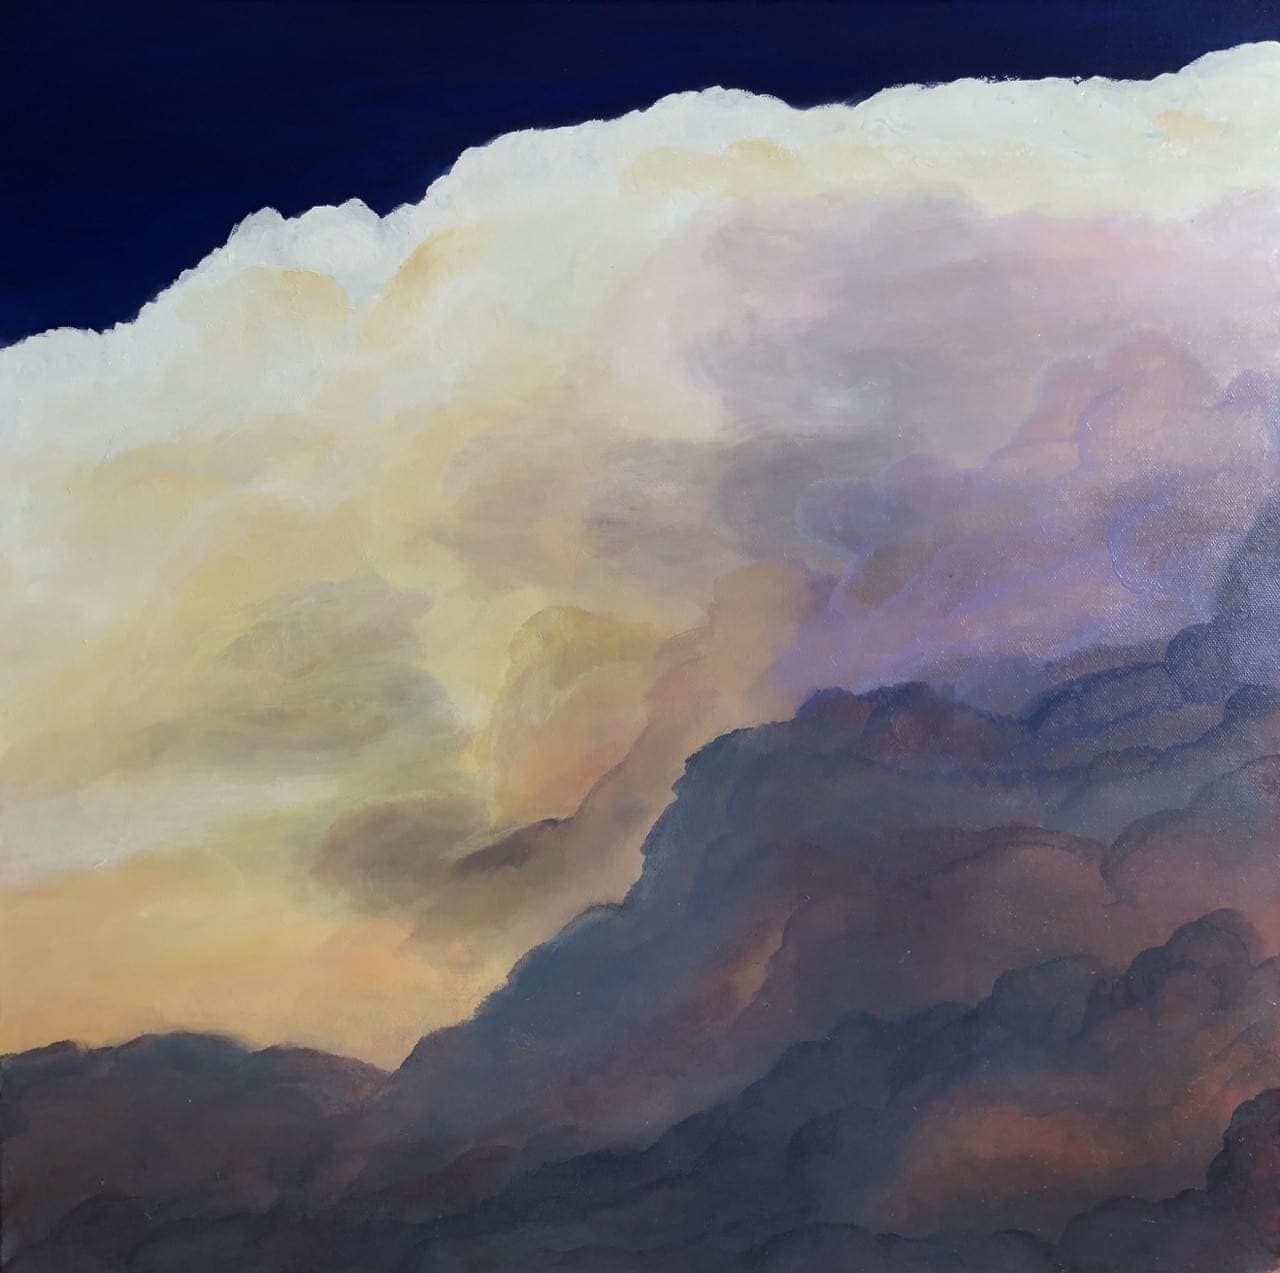 """Clouds II"" an original oil on canvas Measuring width 23.5 x height 23.5 x depth 1.5 inches or 60 x 60 cm x 4 cm. Unframed. Ready to hang. Comes with a certificate of authenticity. £250"